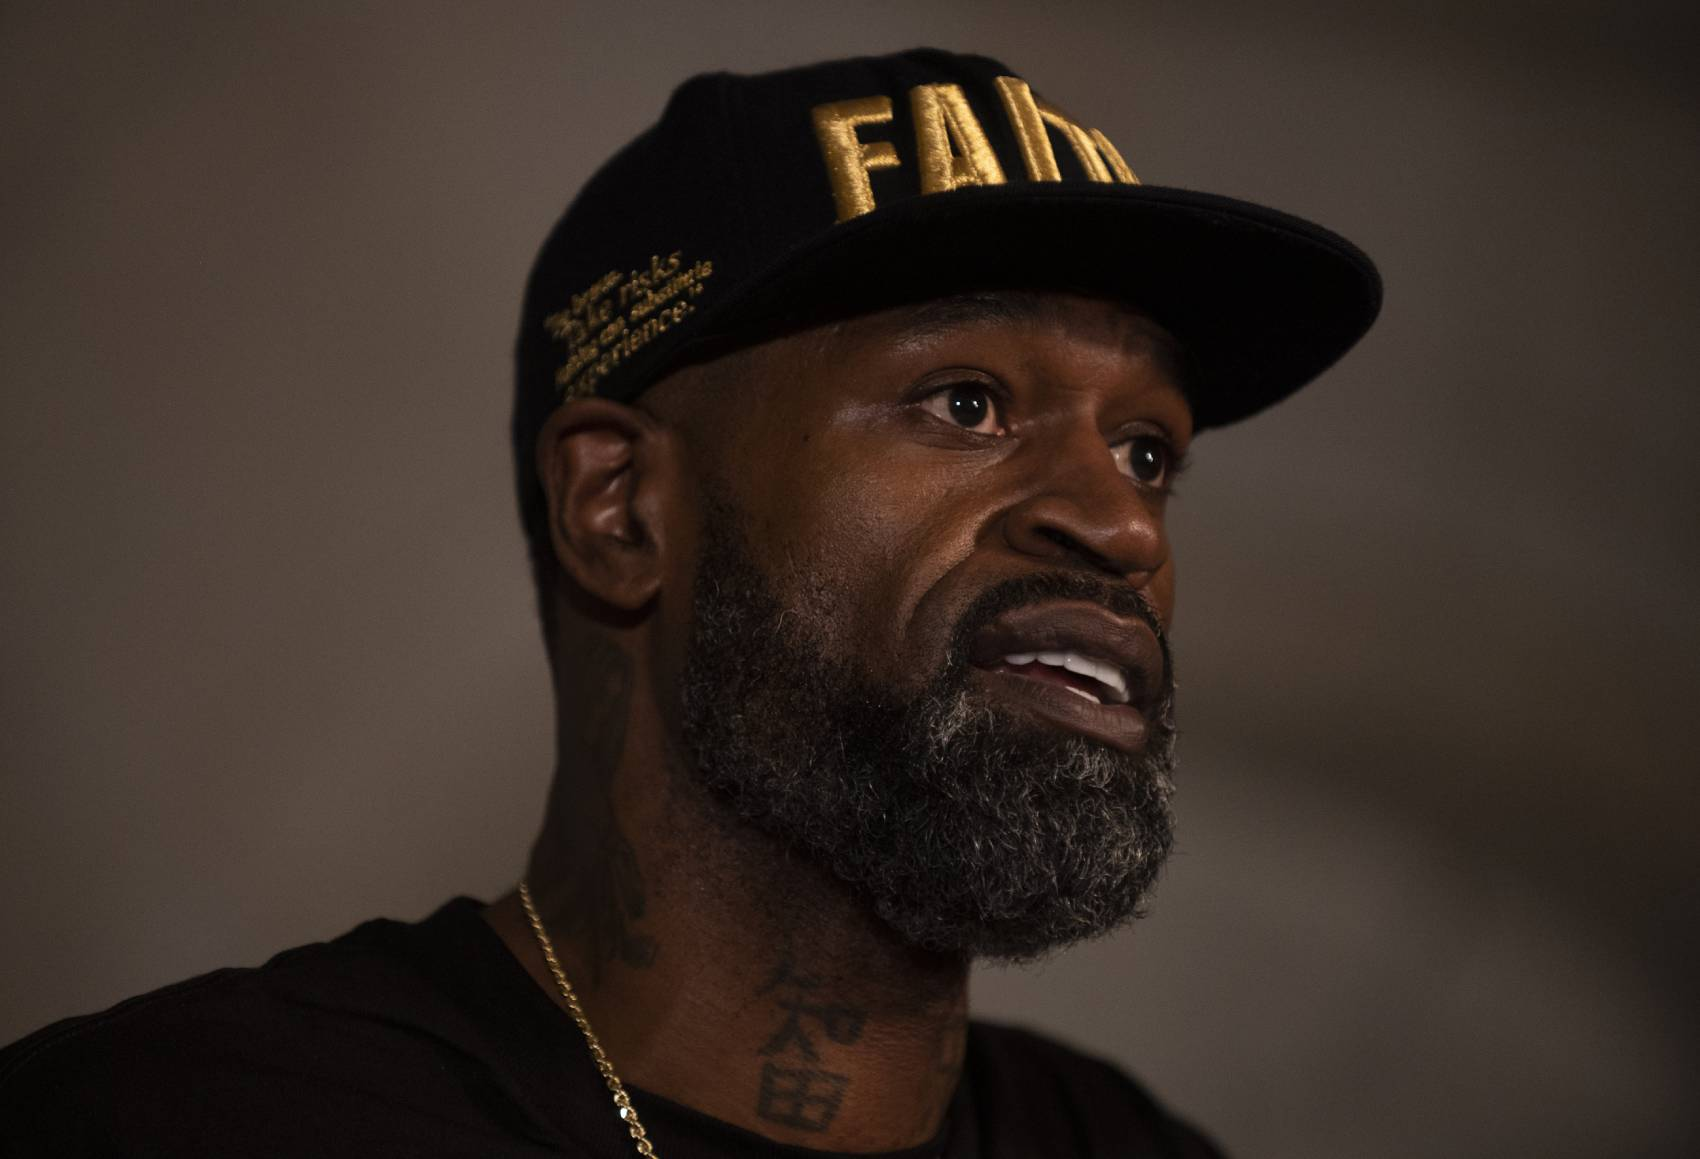 The NBA's Biggest Stars Are Shockingly Silent About Stephen Jackson's Anti-Semitic Comments